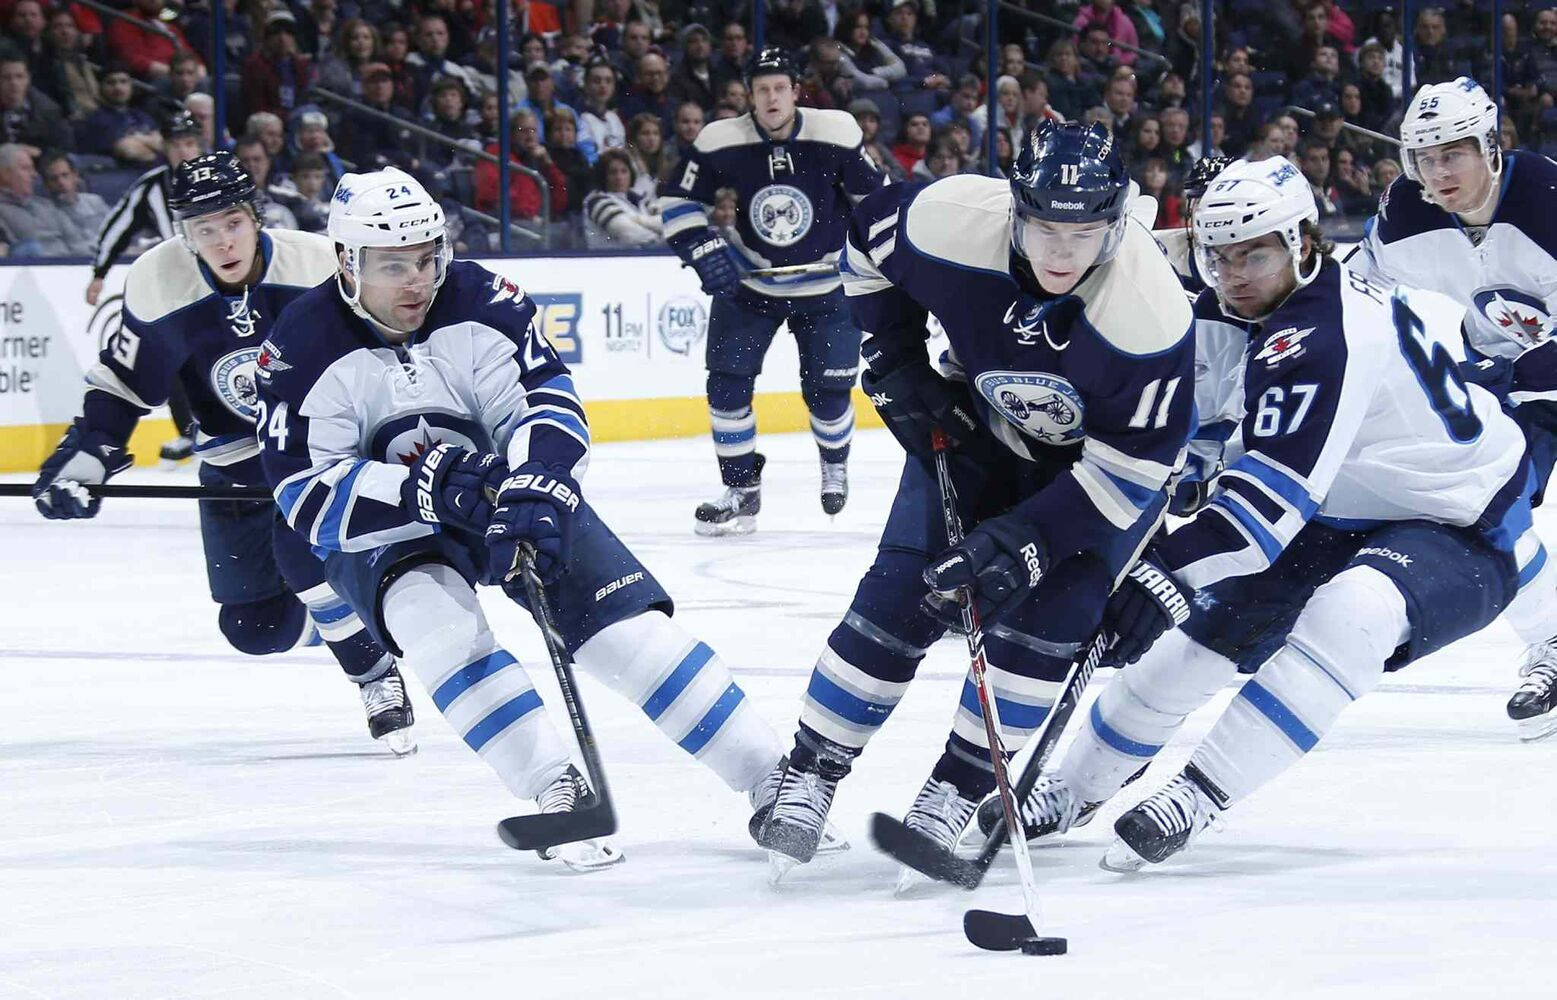 Blue Jackets left winger Matt Calvert (11) carries the puck into the Jets end Monday night.